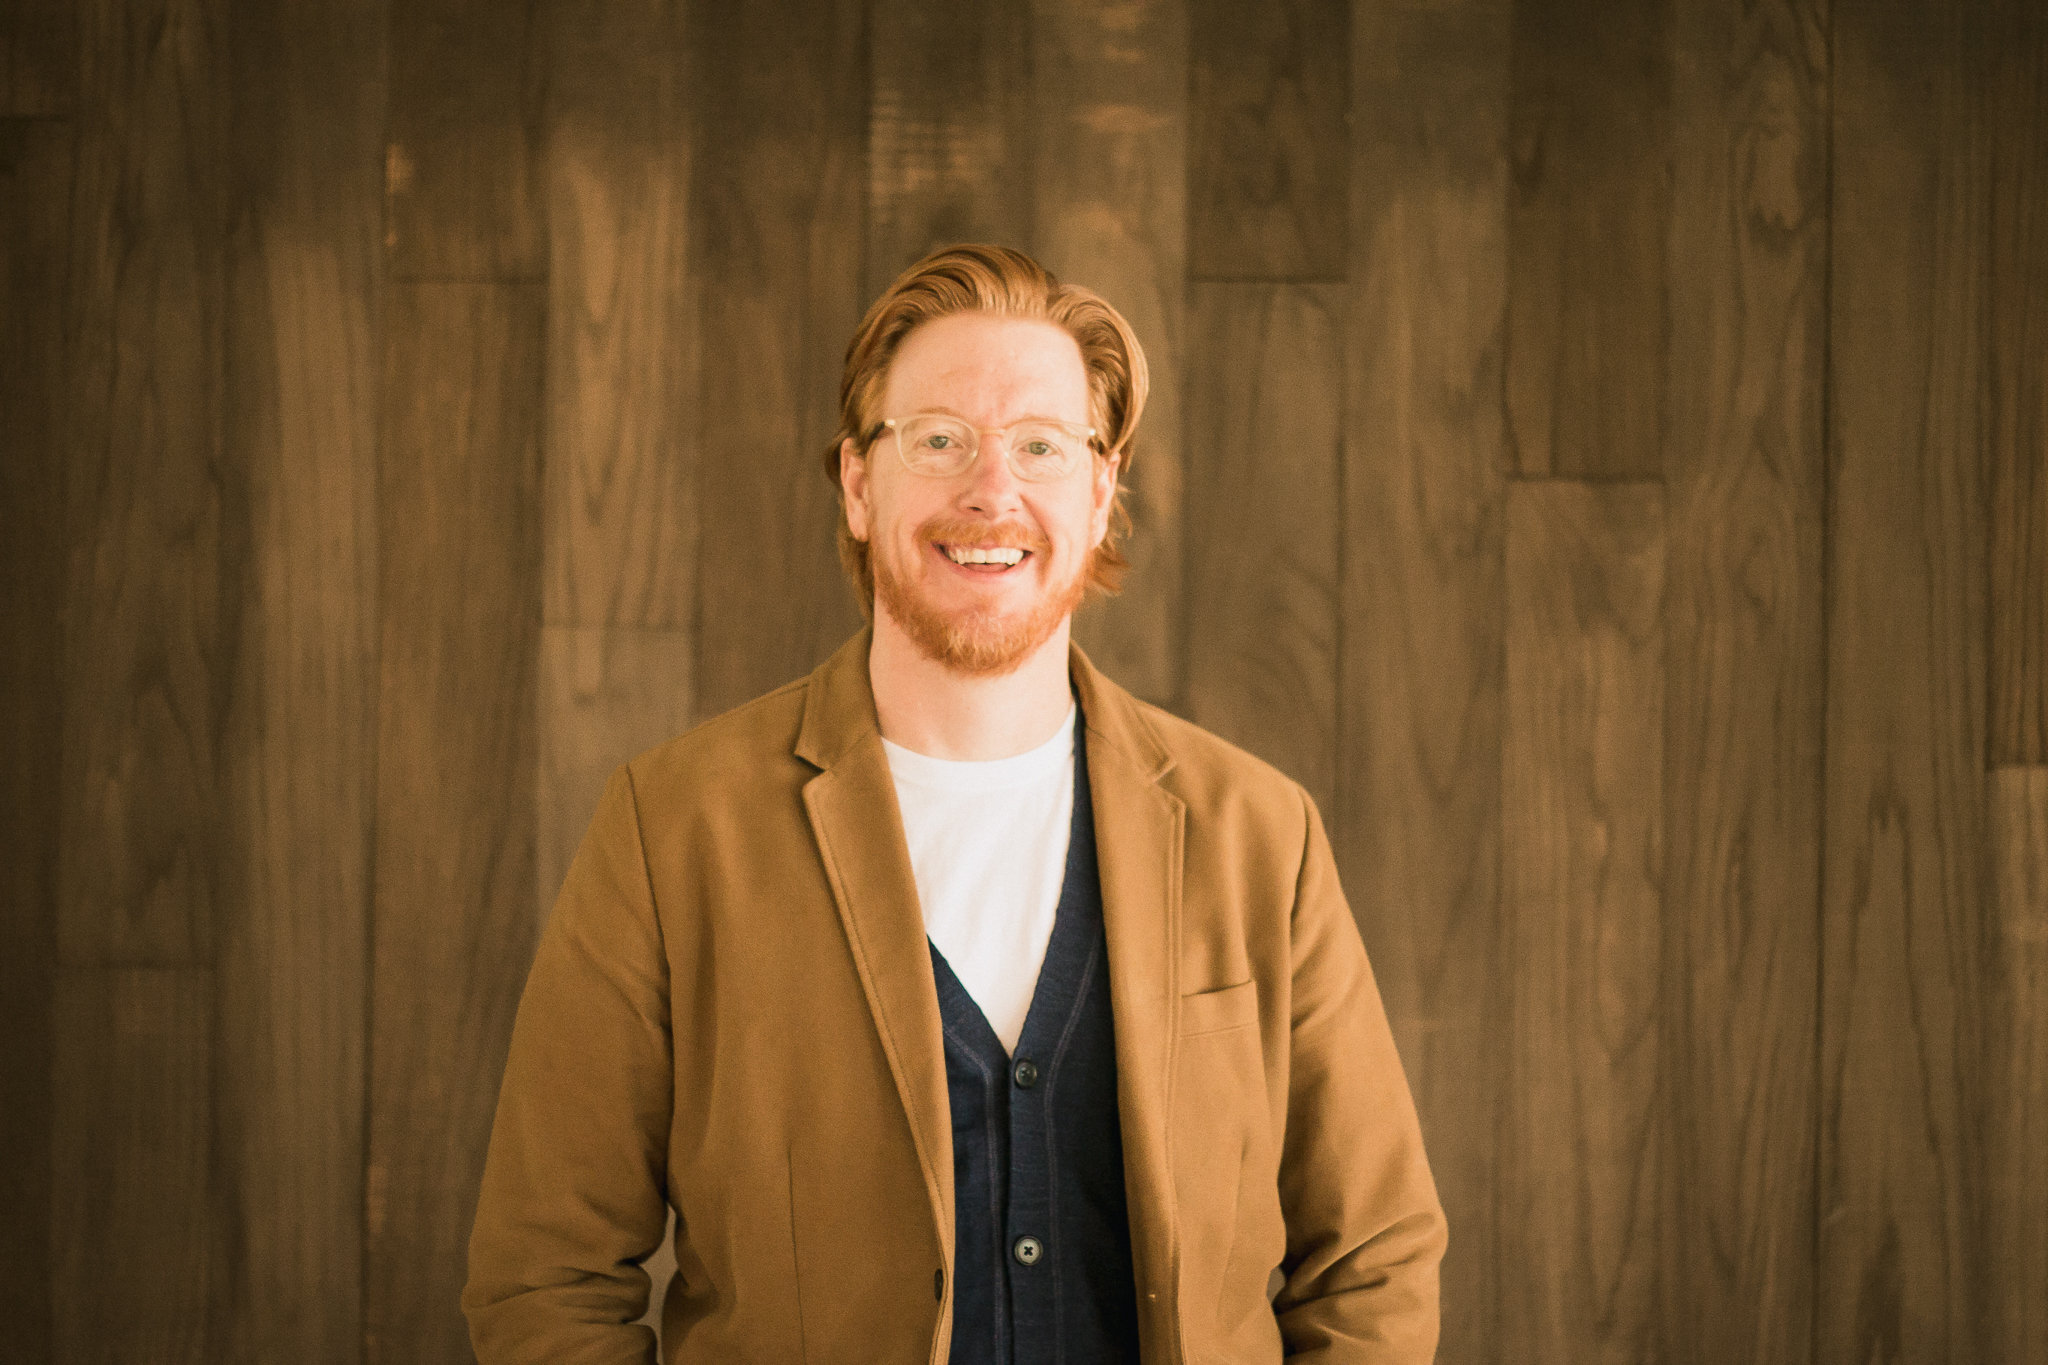 Lead Pastor Wes Hamilton has served with Hulen Street Church since 2010.